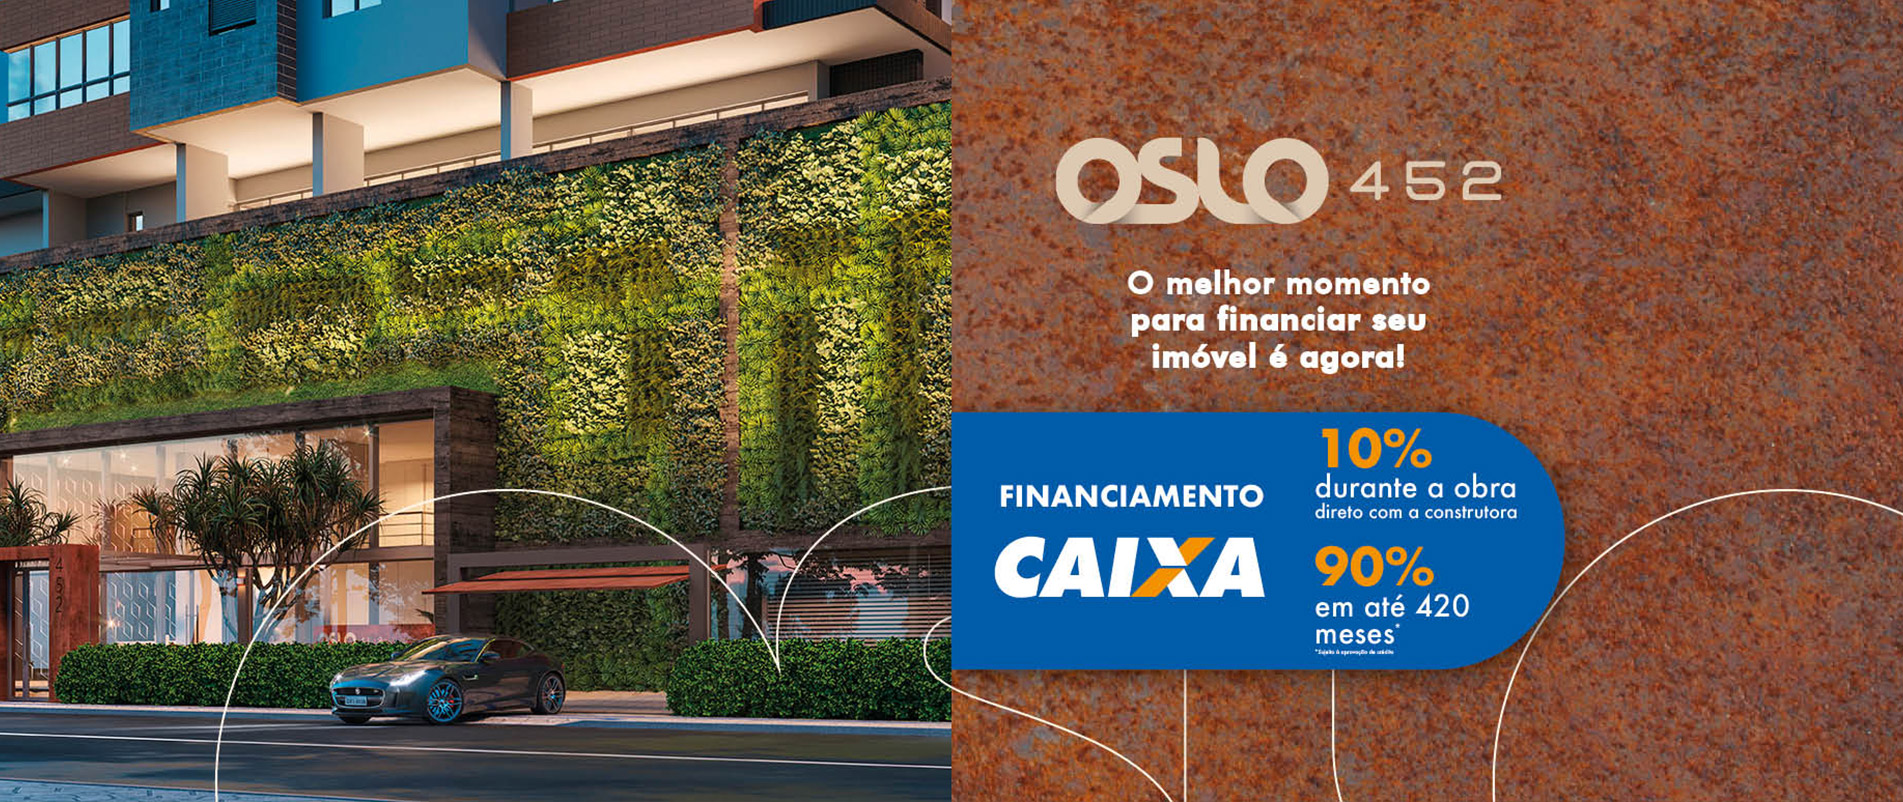 Financiamento Oslo452